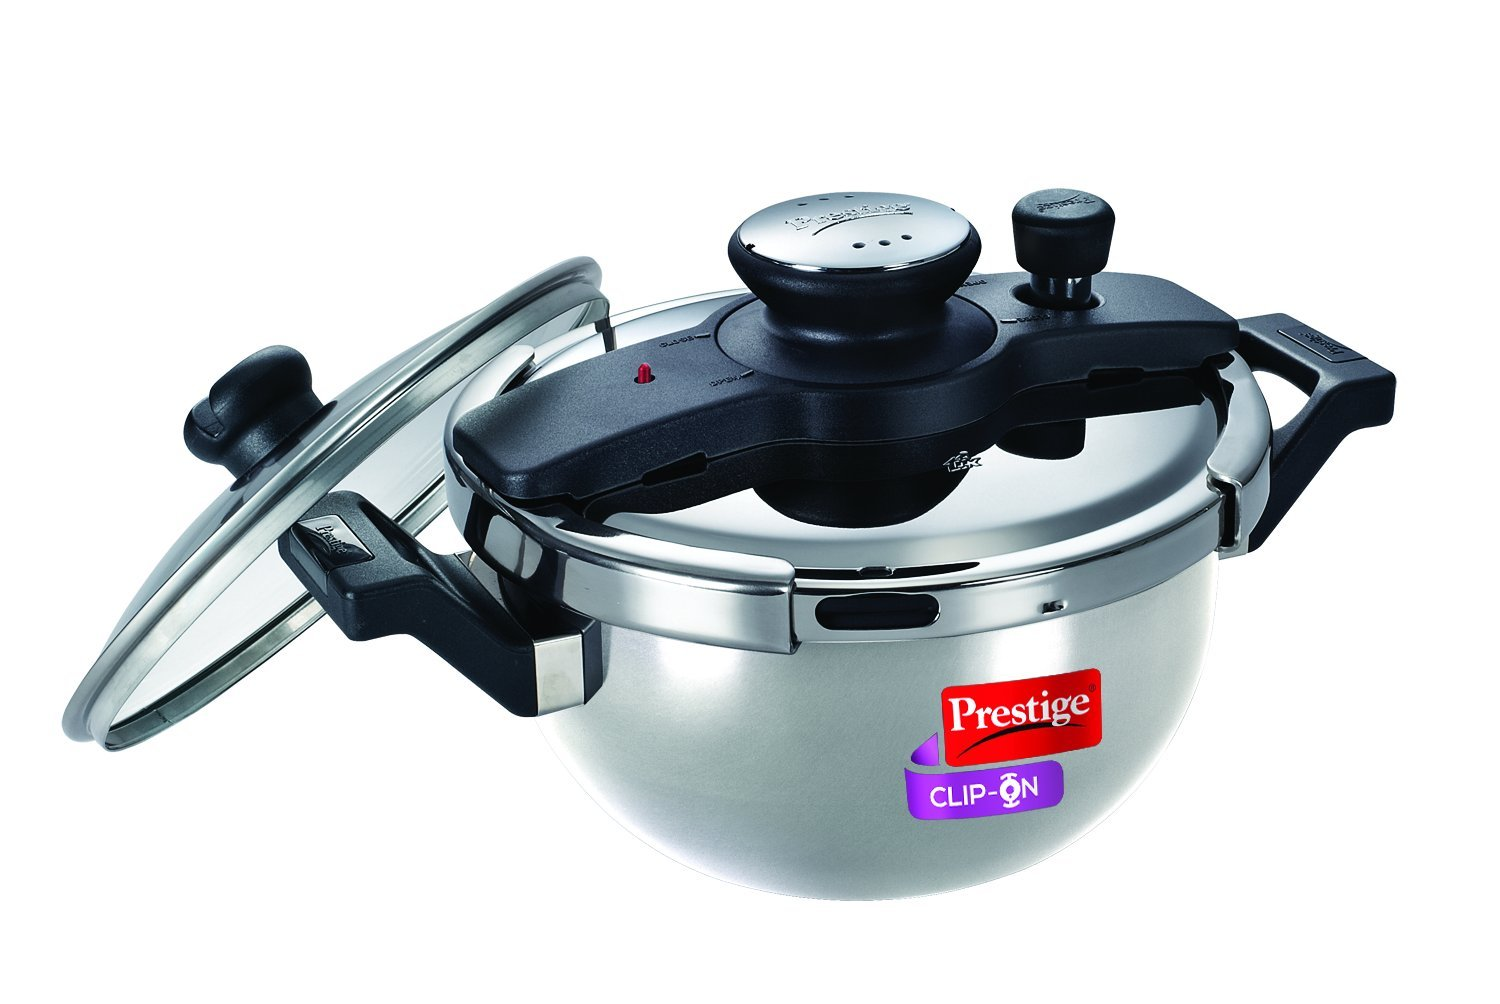 Prestige Clip On Stainless Steel Kadai Pressure Cooker with Glass Lid, 3.5-Liter